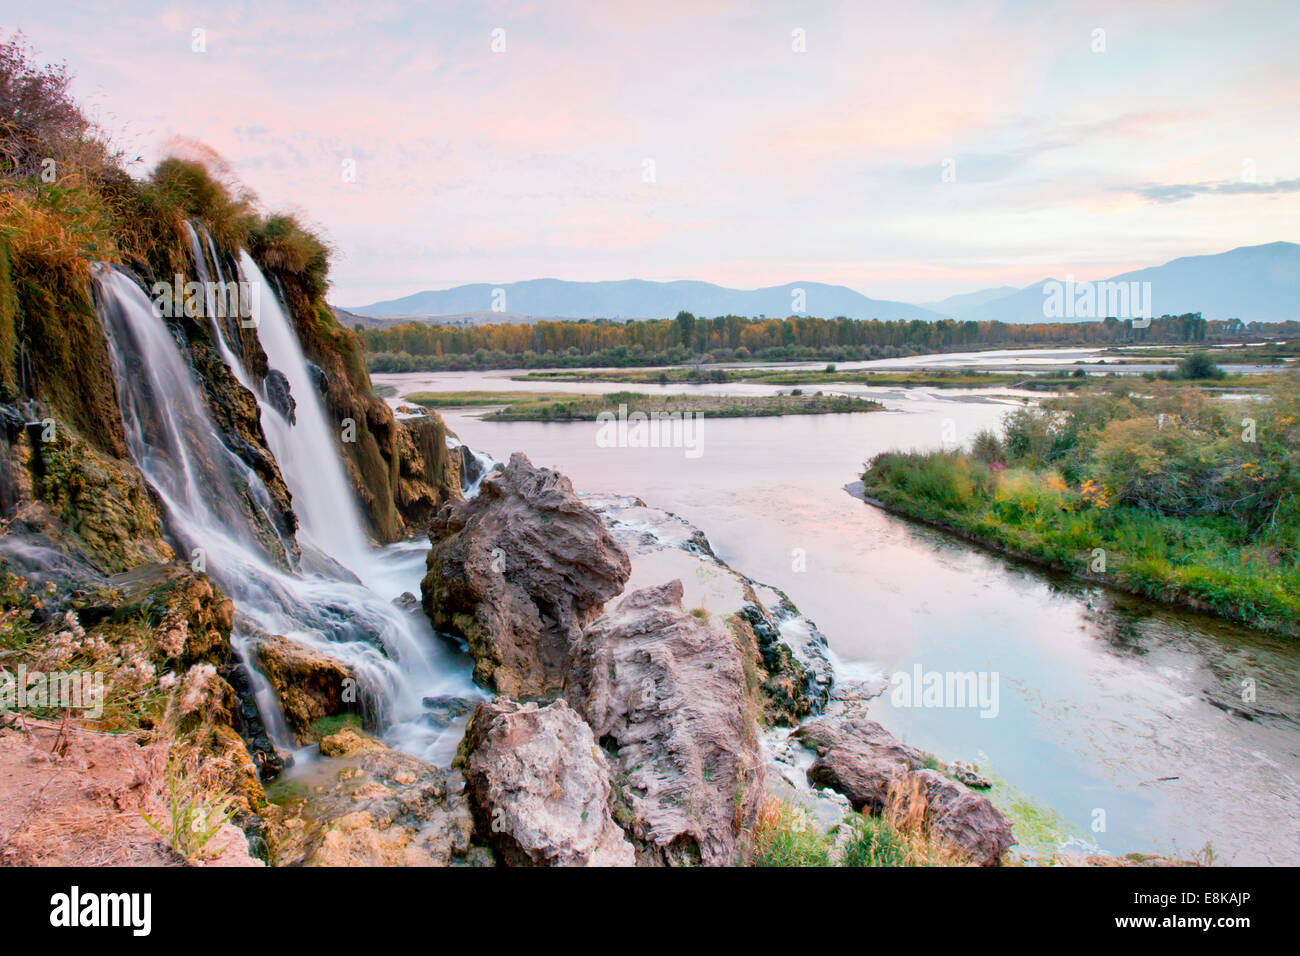 Water falls on small stream flowing into Snake River, Idaho, USA. - Stock Image